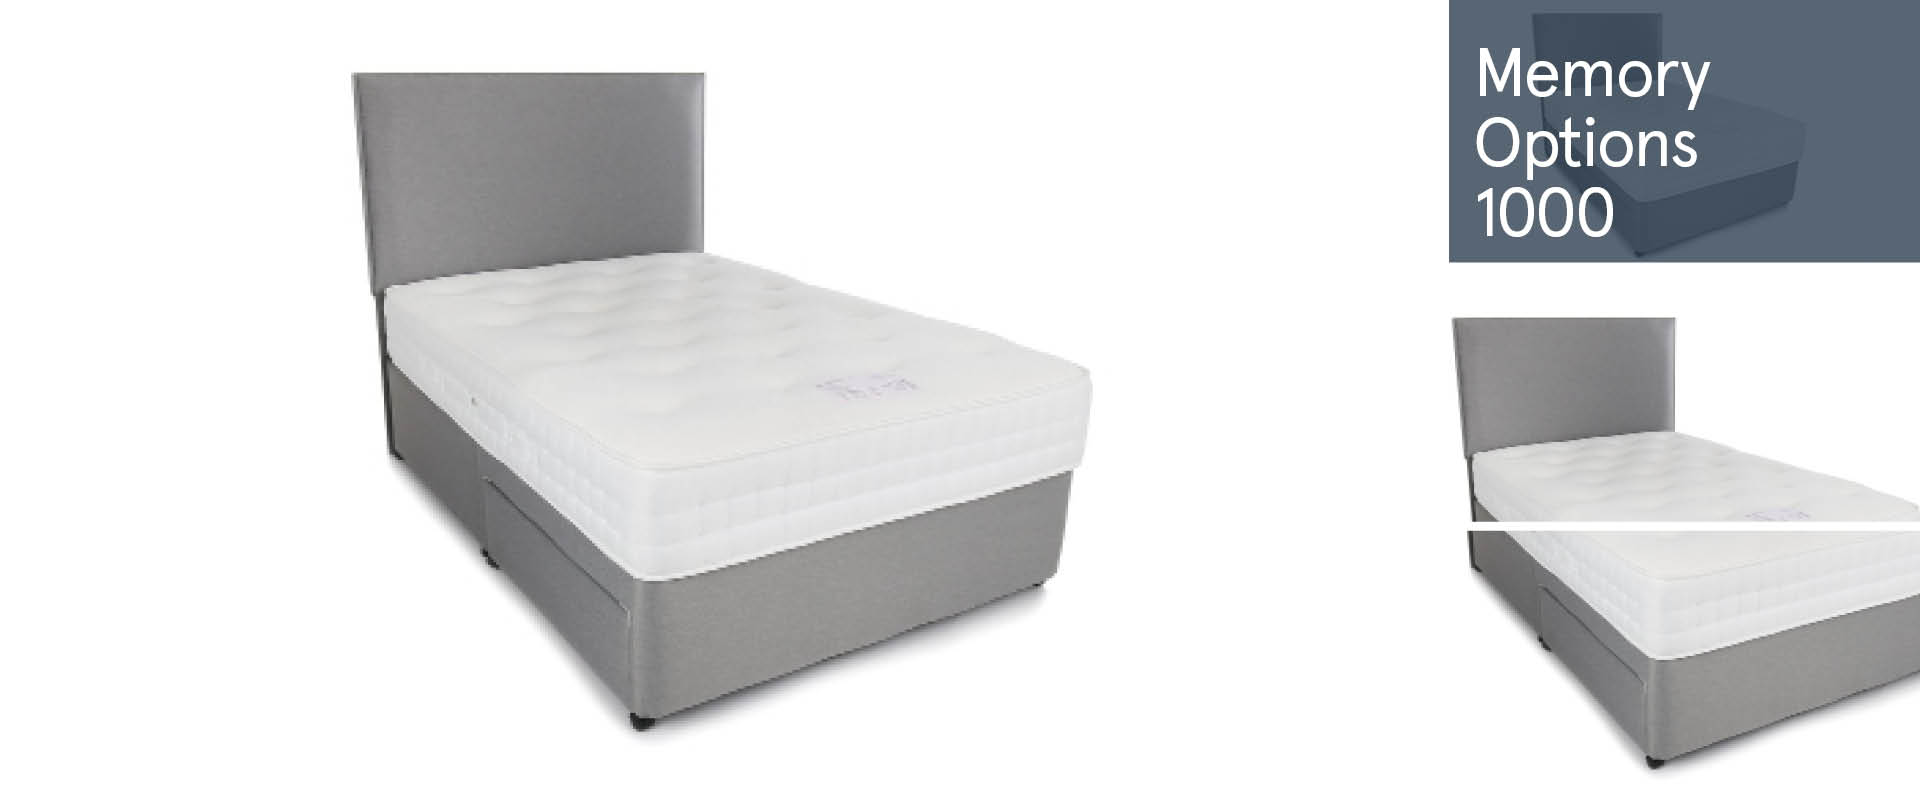 Memory-Options-1000 Divan Beds Ranges